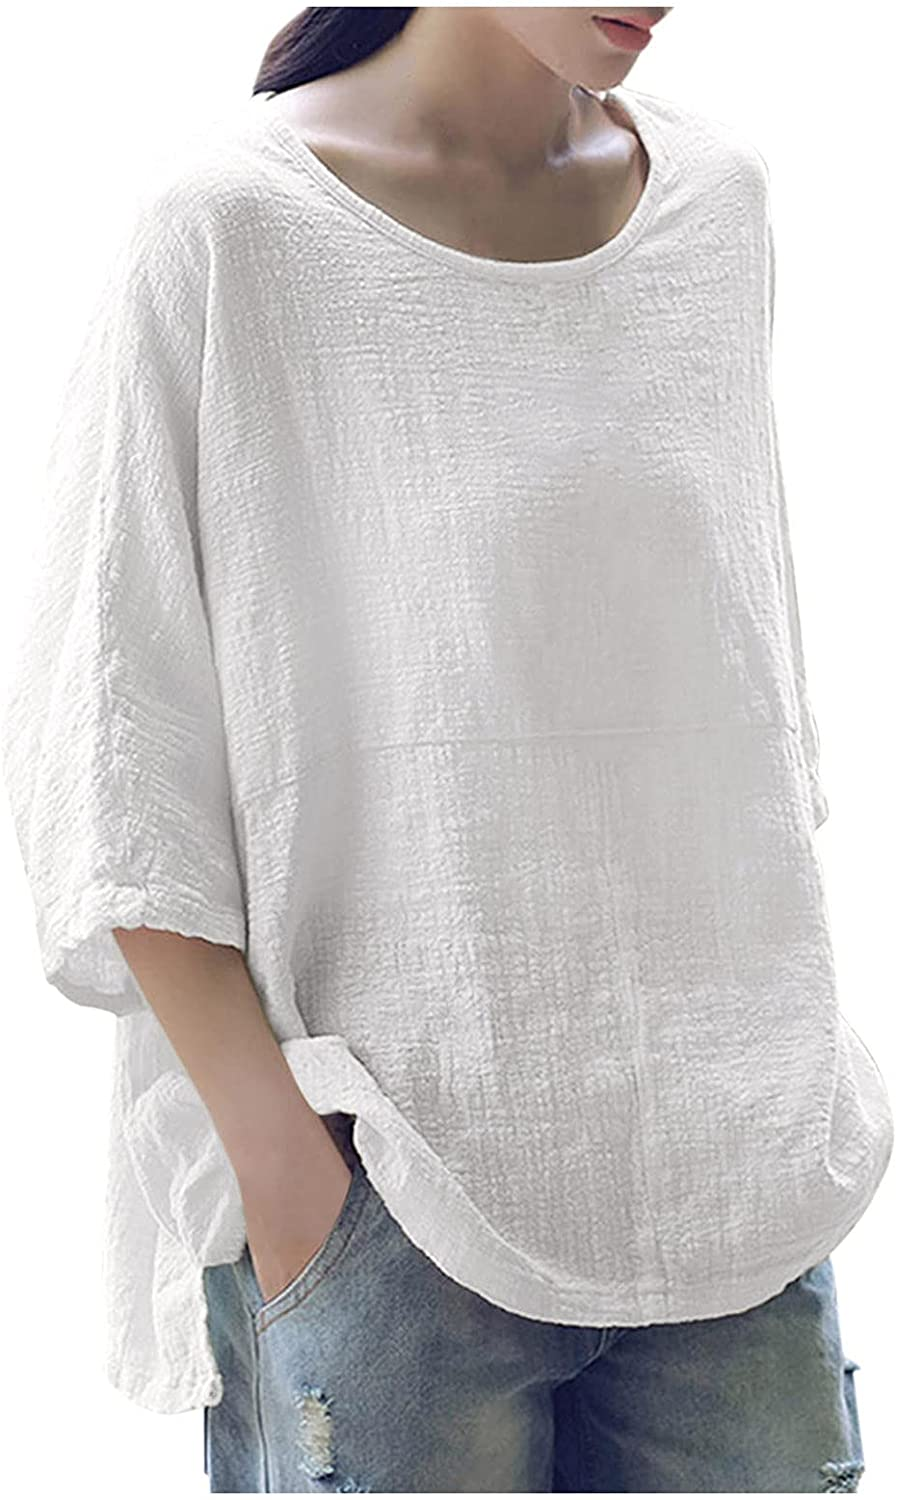 Plus Size Tops for Women 3 4 Linen Sleeve Color Solid Cotton New sales Max 50% OFF Sid